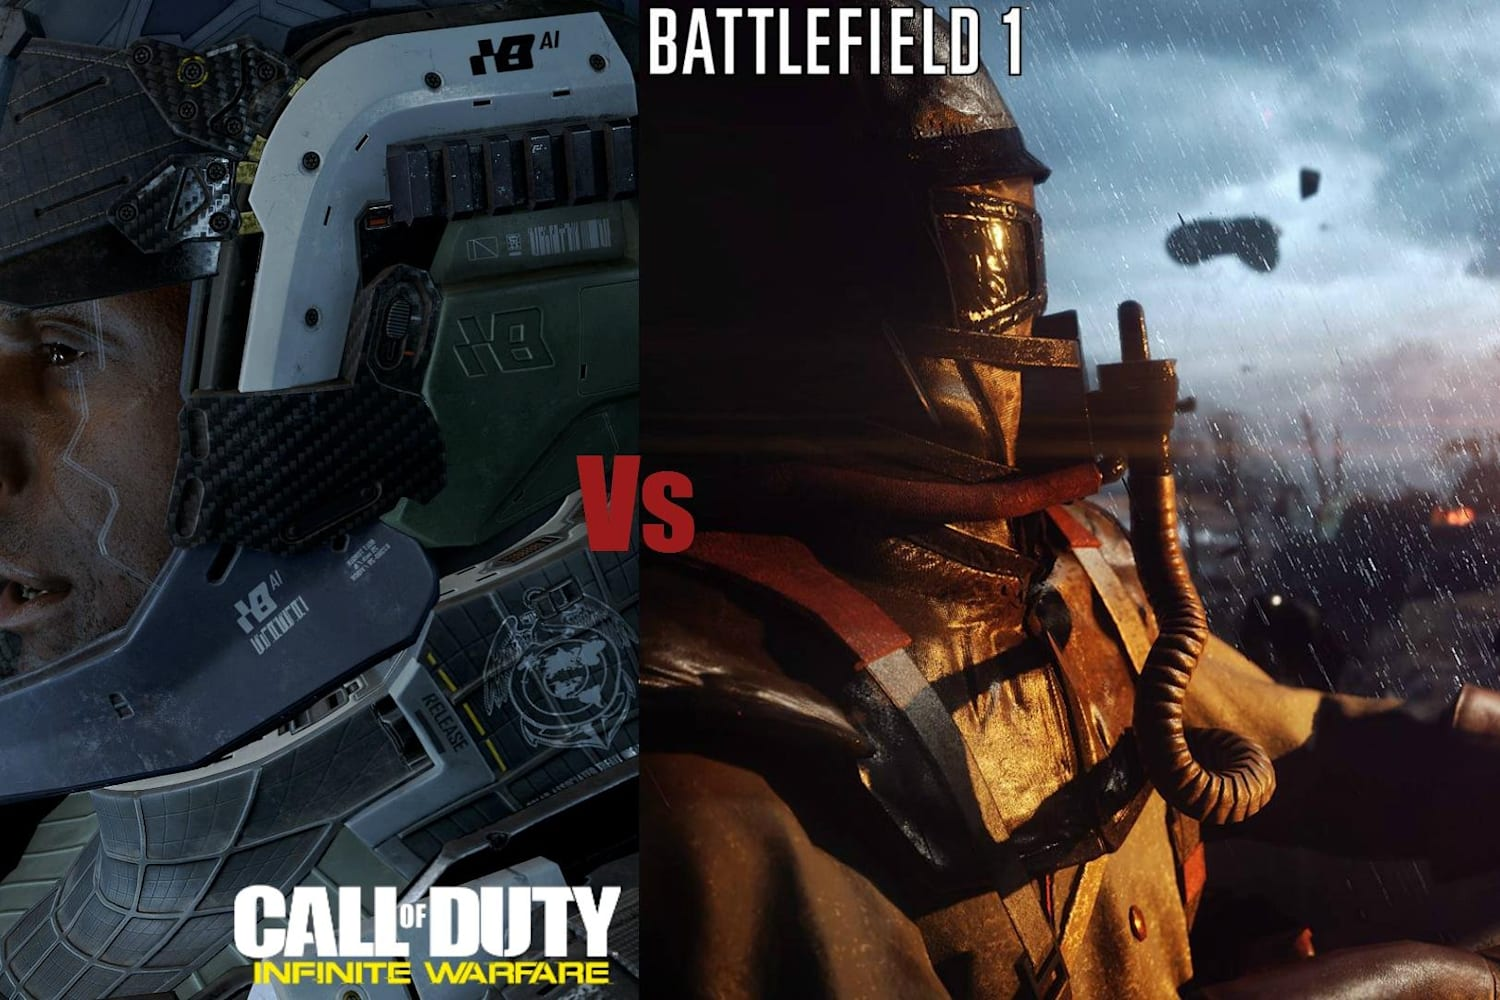 Battlefield 1 Vs Call Of Duty Which Game Is Better